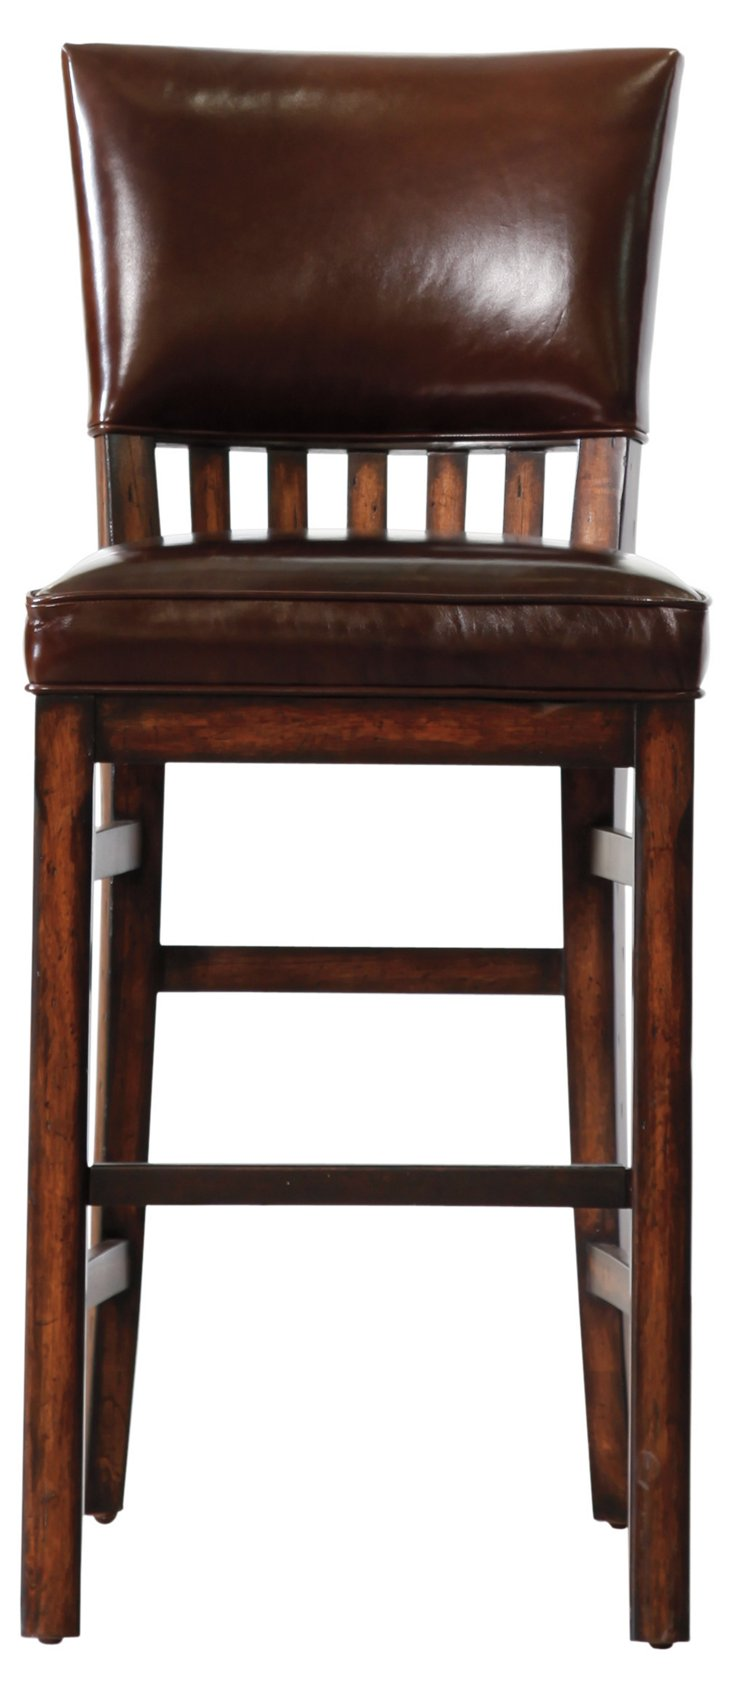 Morris School Leather Barstool, Tobacco